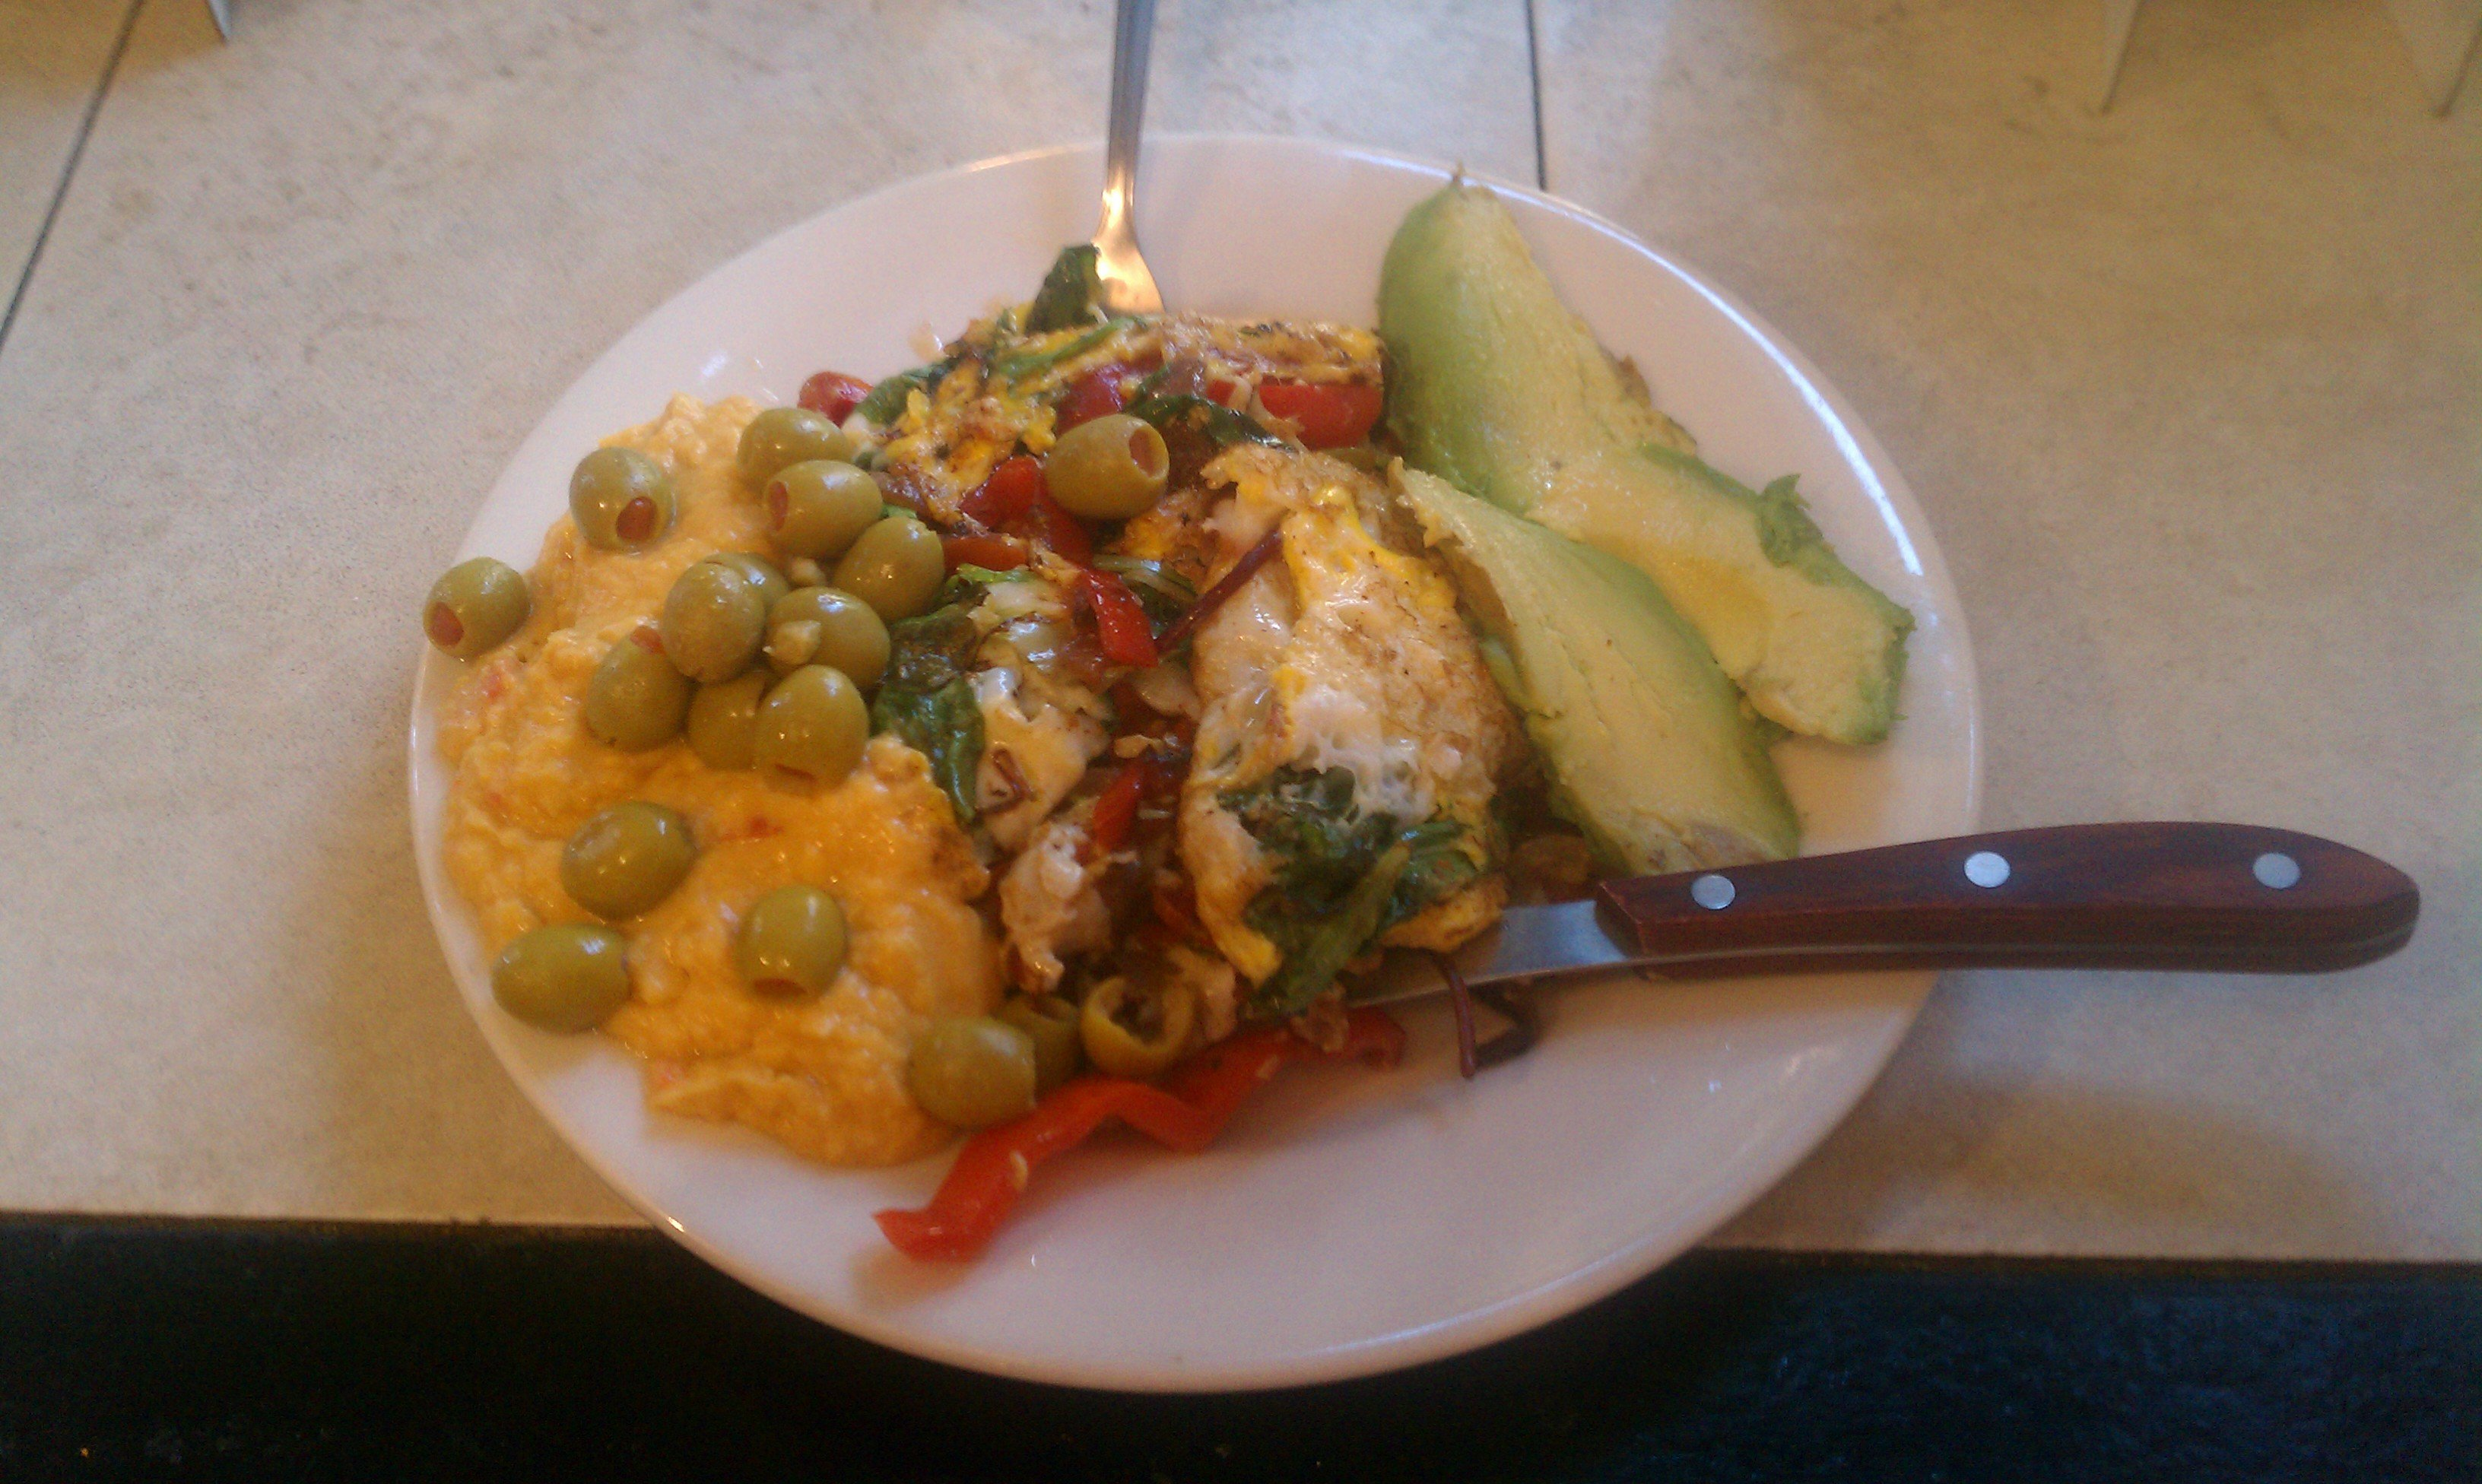 A Diet Plan To Lose Weight With Hashi Mashi For Breakfast - Vegetable Egg Omelete, Hummus, Avocado , Olives